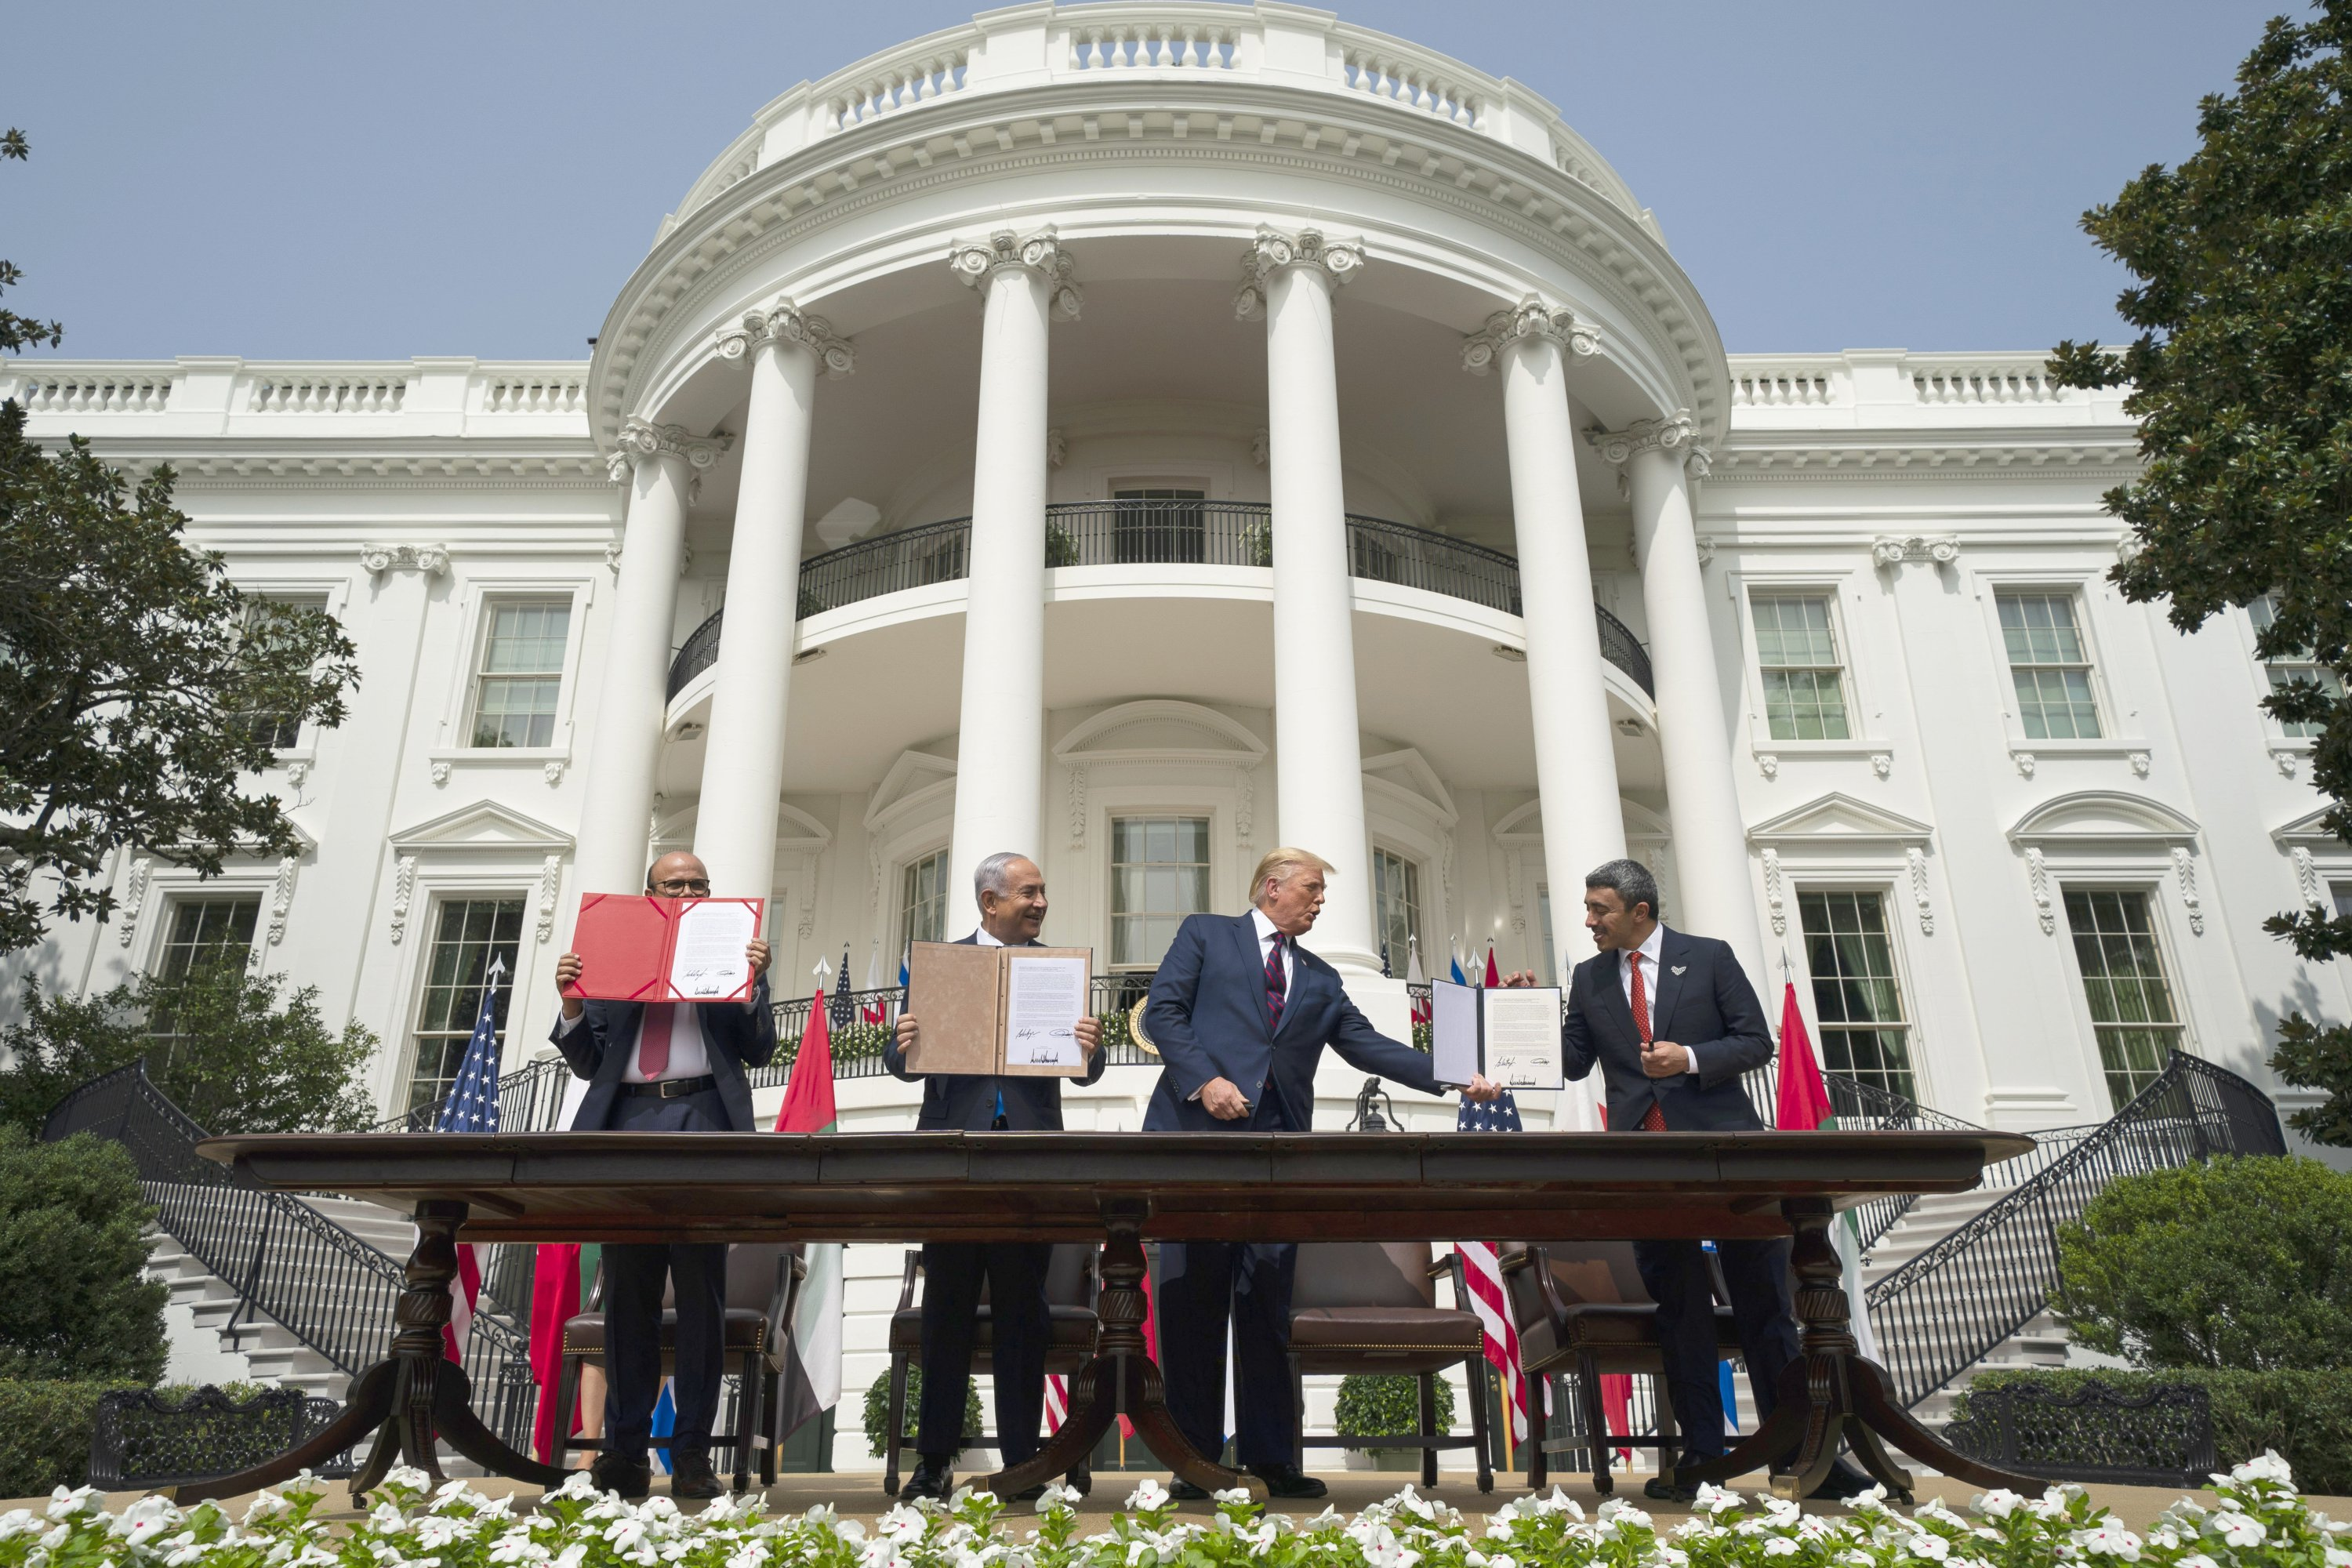 From left to right, Bahrain Foreign Minister Abdullatif al-Zayani, Israeli Prime Minister Benjamin Netanyahu, U.S. President Donald Trump and UAE Foreign Minister Abdullah bin Zayed Al-Nahyan during the Abraham Accords signing ceremony, Washington, D.C.,Sept. 15, 2020. (AP Photo)